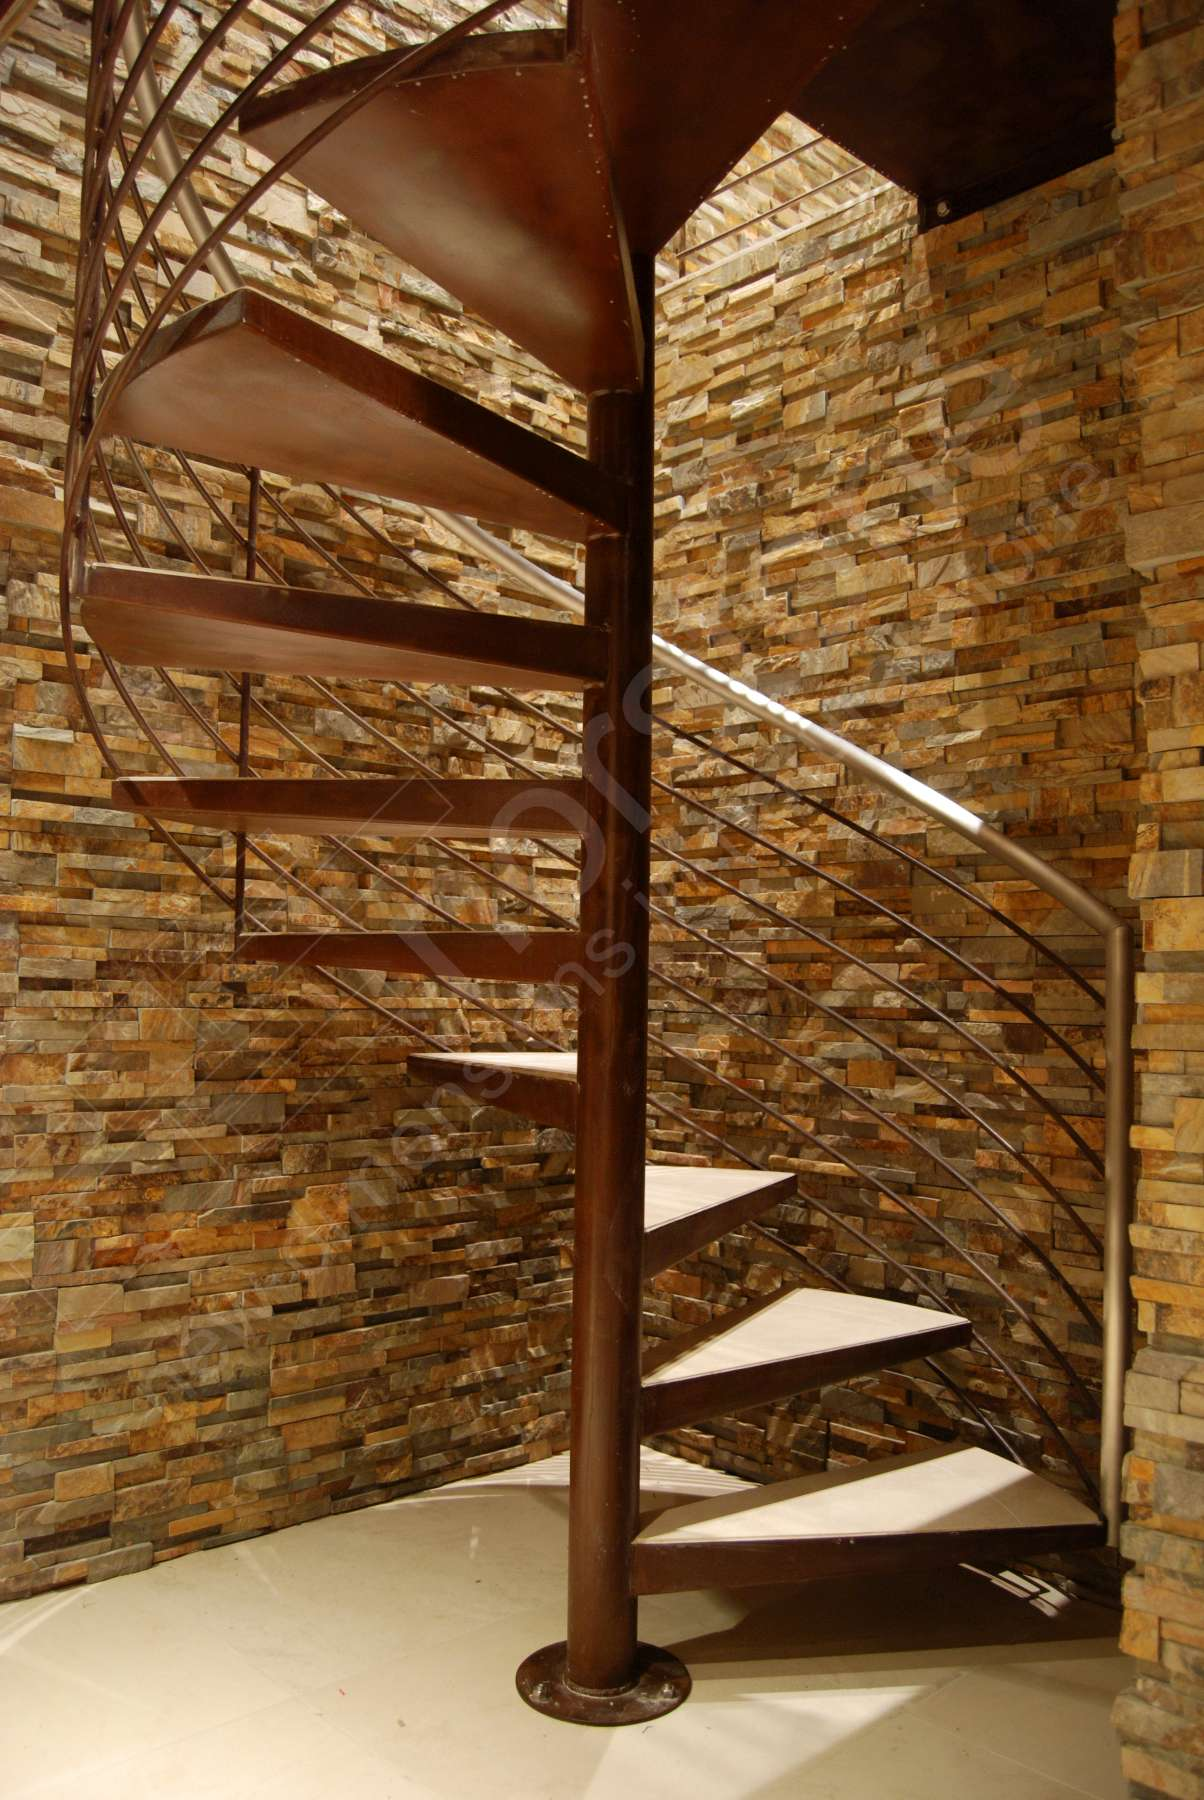 Norstone Ochre Stacked Stone Rock Panels in stairwell of spiral staircase of an underground Wine Cellar in California